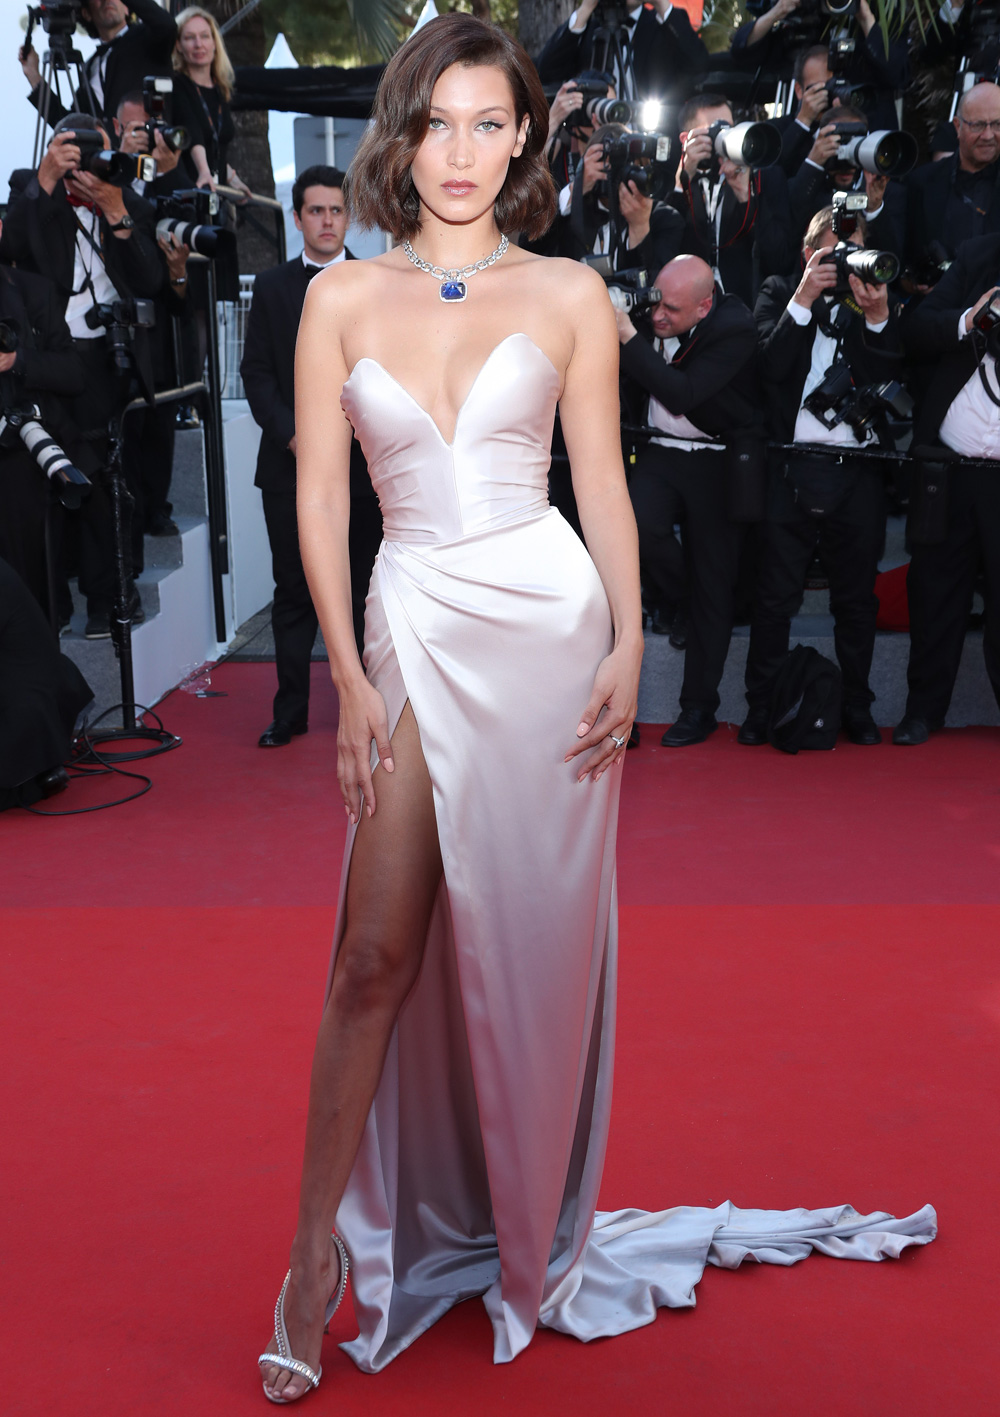 Red Carpet Favourite And Ultra Successful 20 Year Old Model Bella Hadid Simply Stuns In A Light Pink Corset Style Alexandre Vauthier Dress With Daring